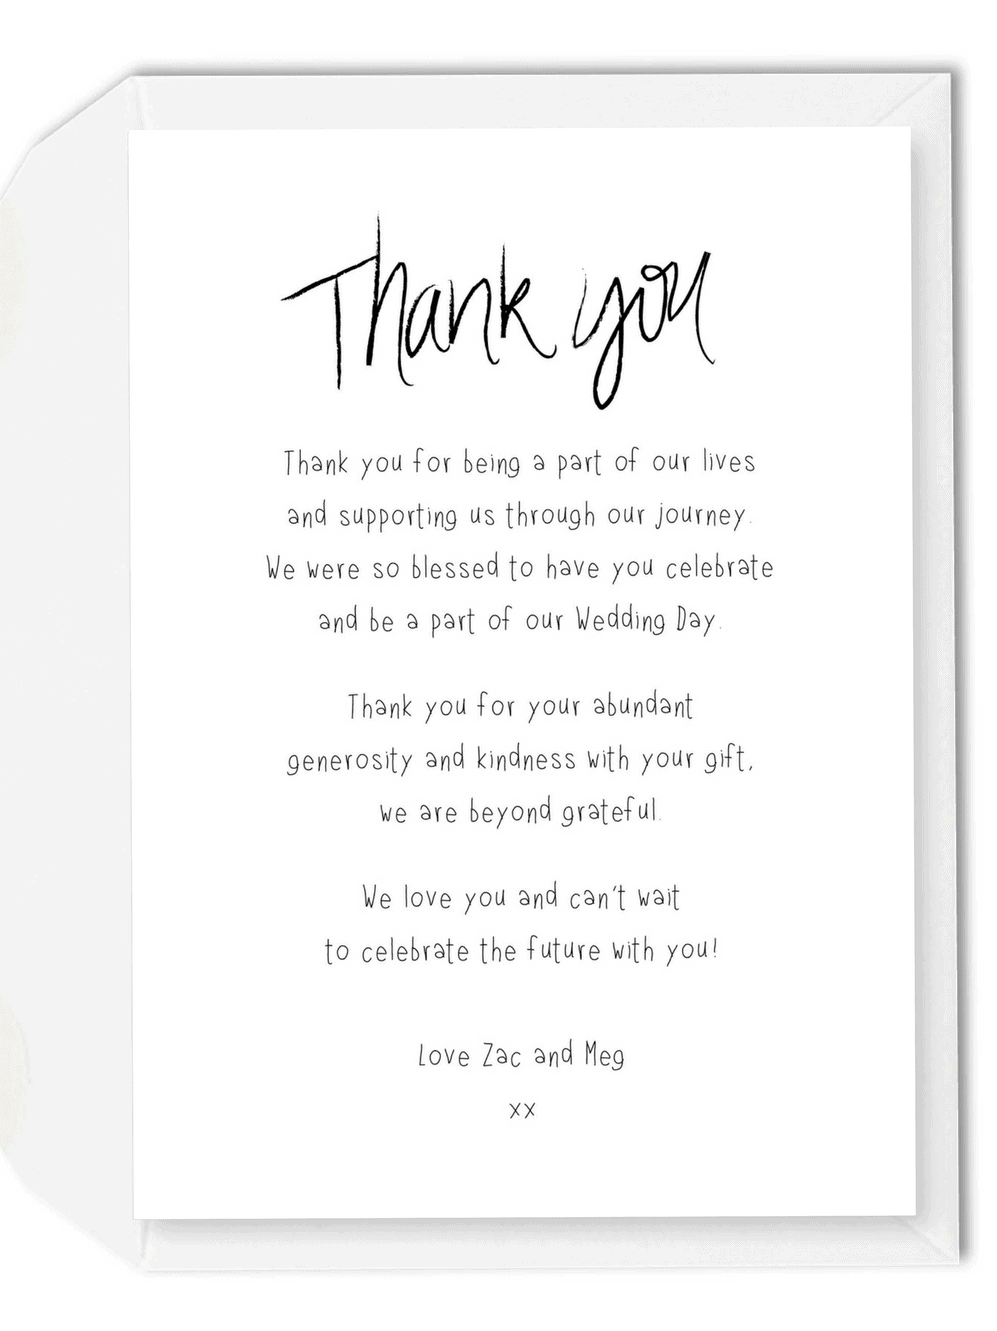 5 wording ideas for your wedding thank you cards for the love of wedding thank you card wording ideas 2 stopboris Image collections